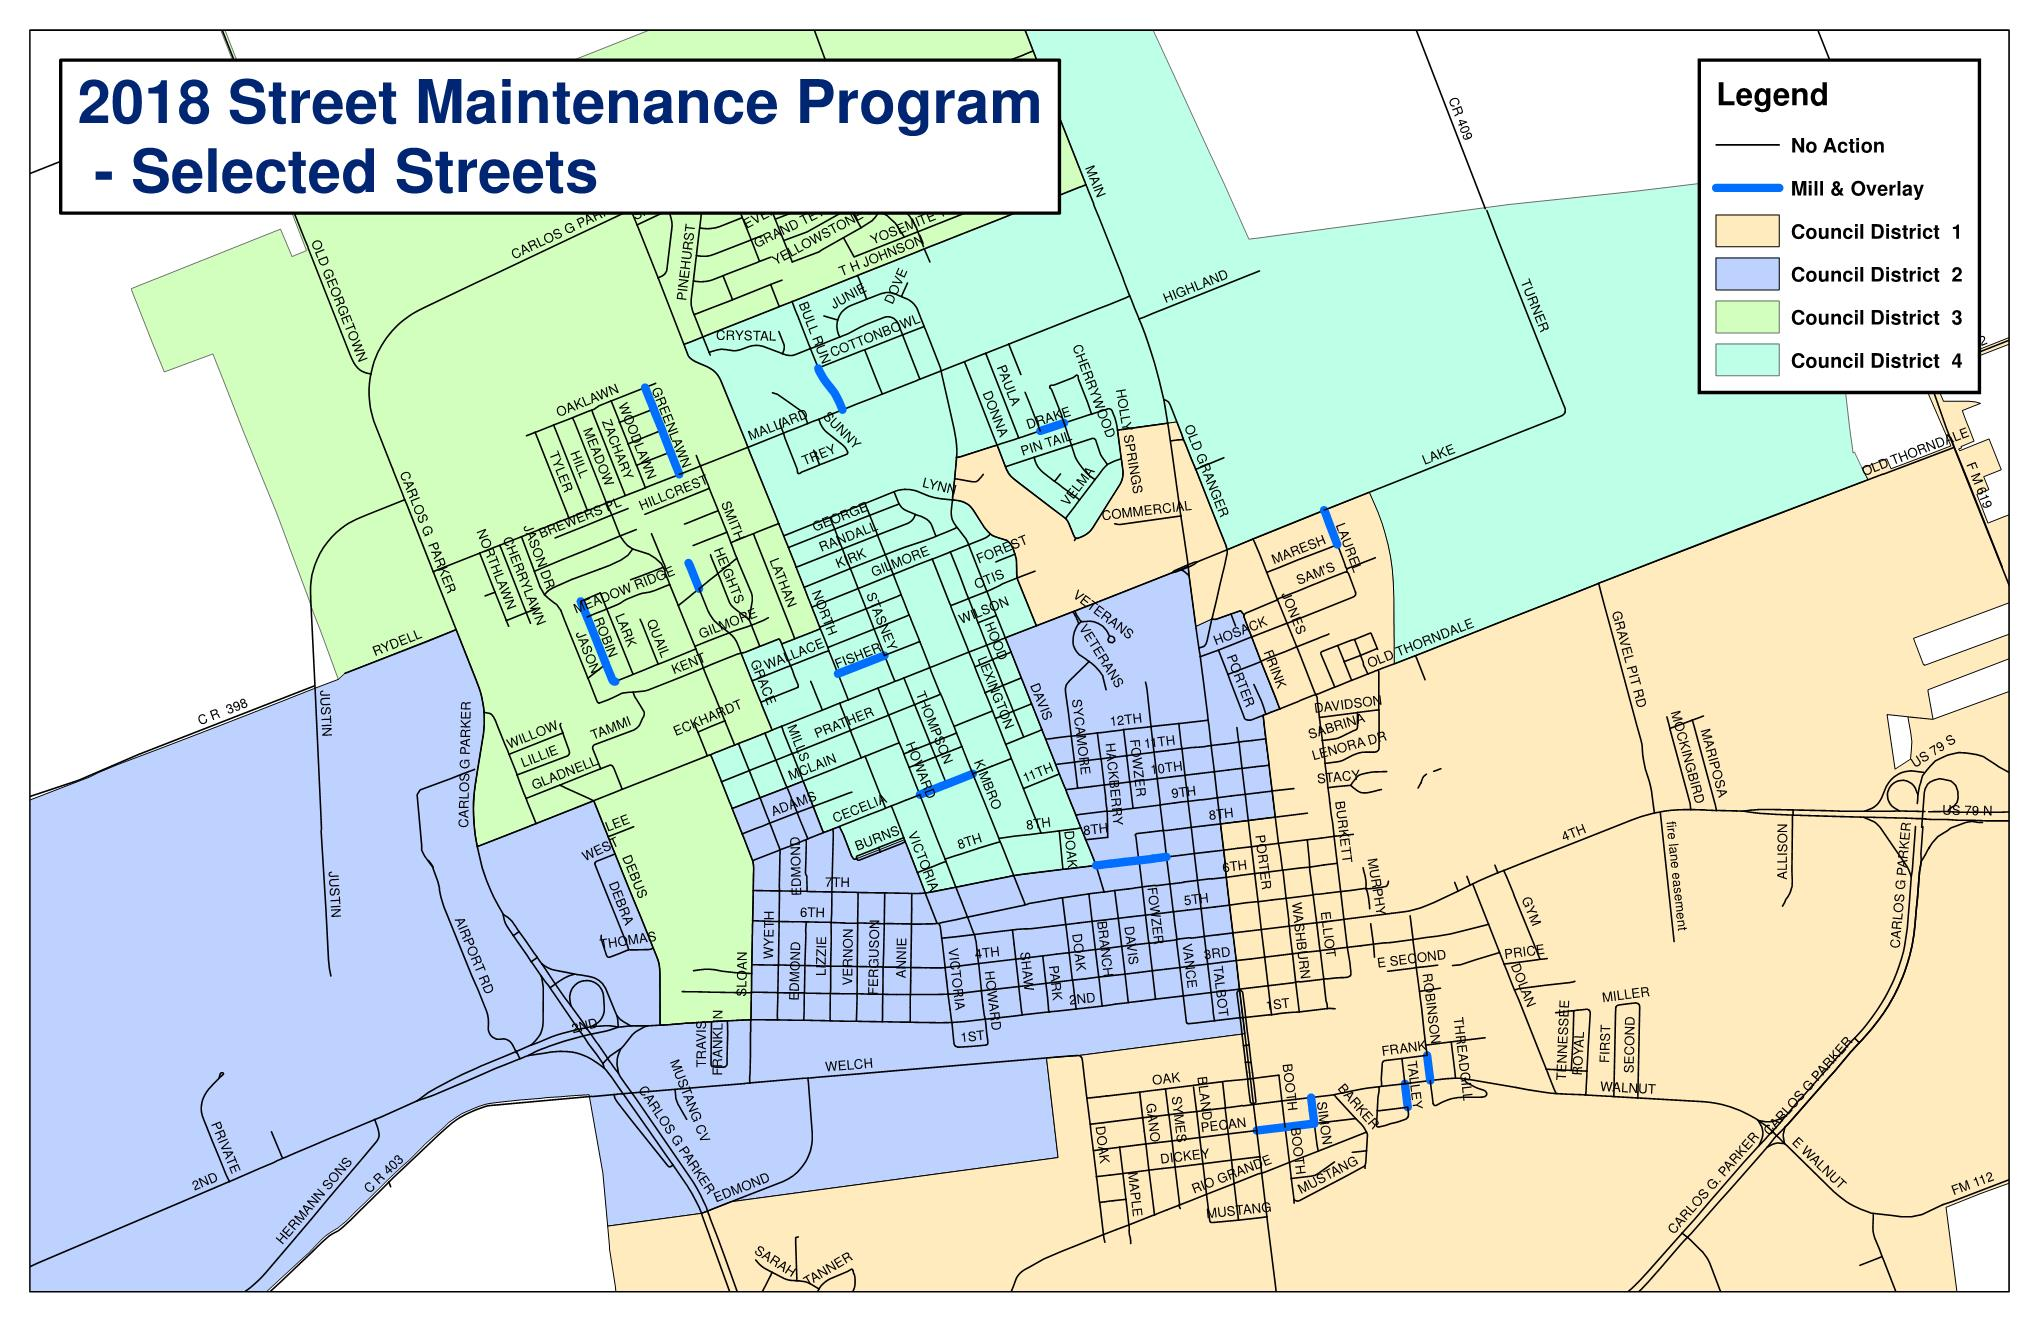 2018 Street Maintenance Program - Selected Streets